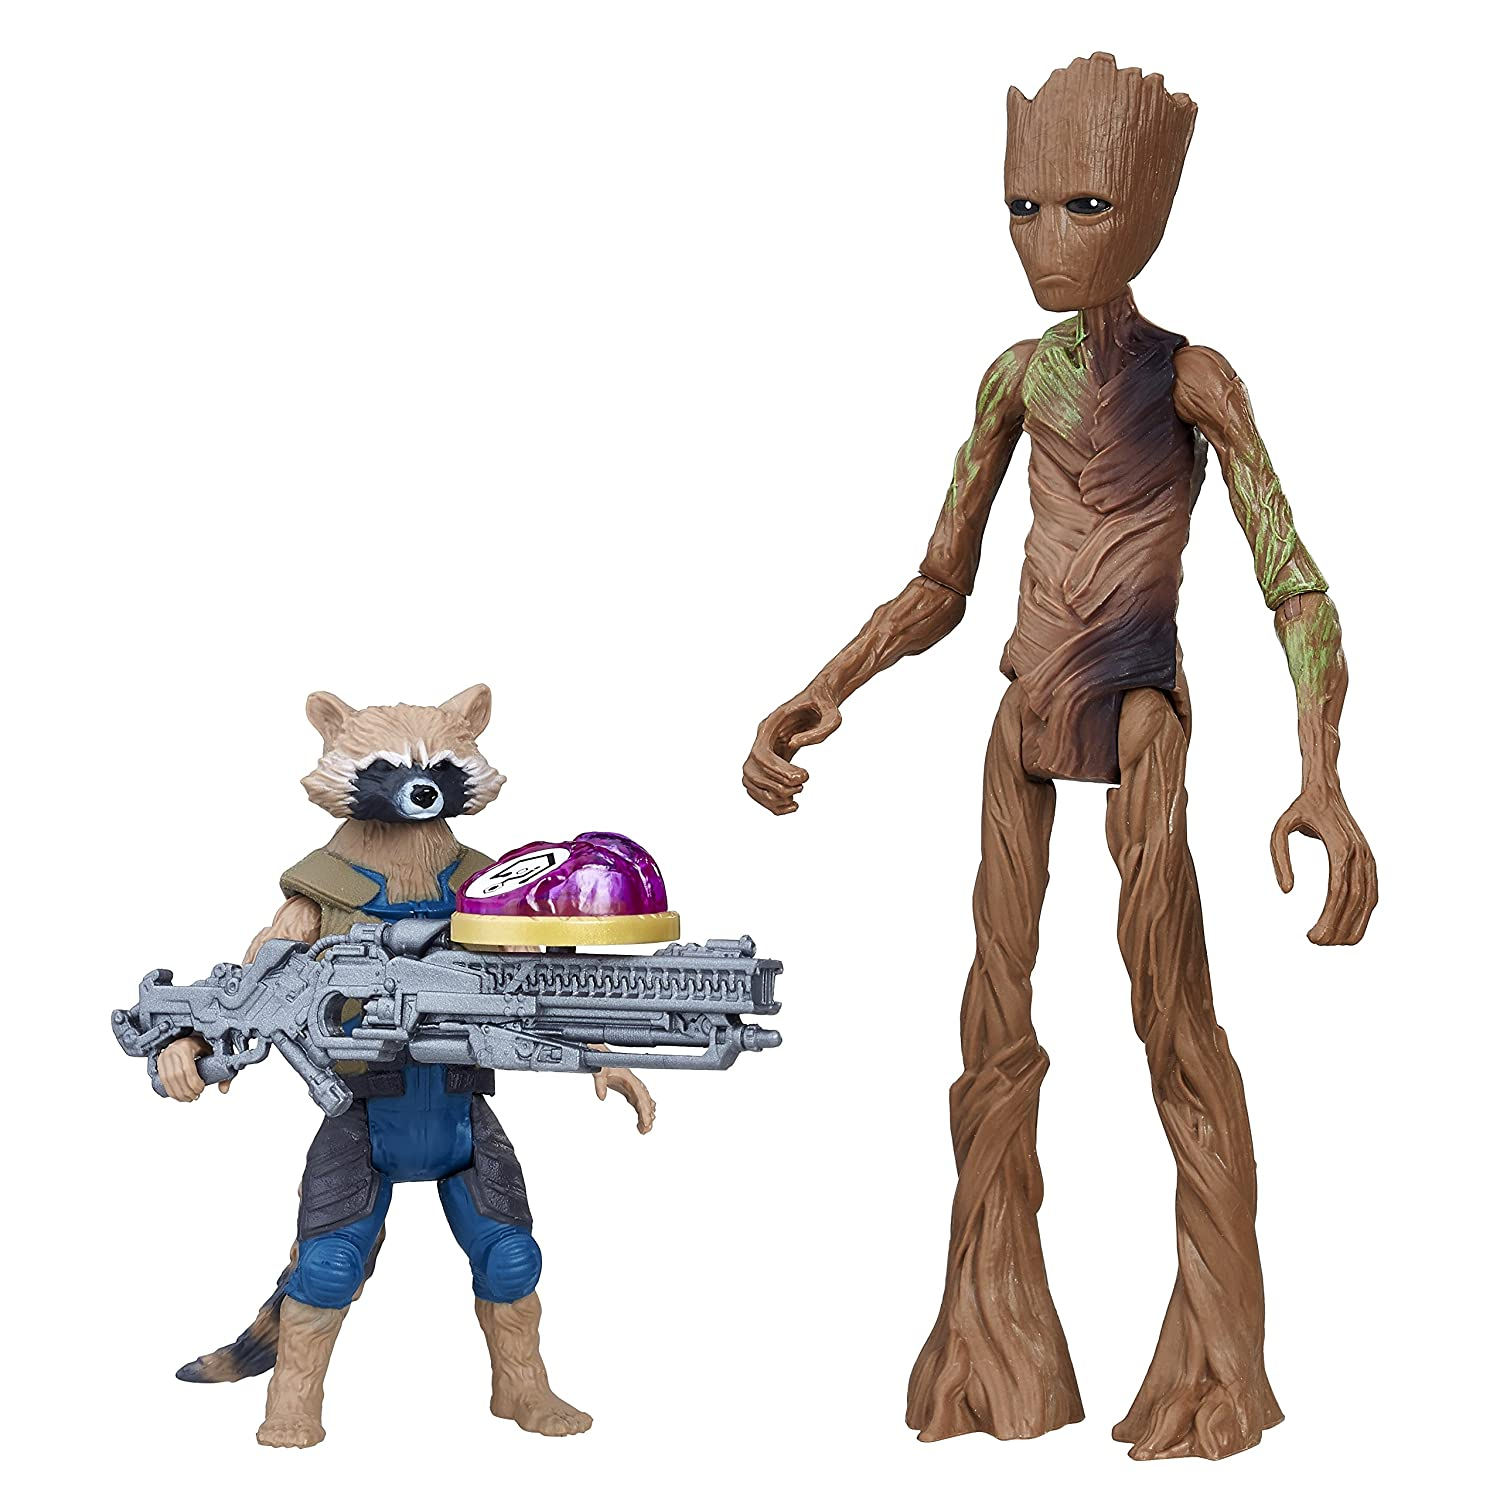 Avengers Raccoon and Teen Groot Action Figure, Avengers, Infinity War, Marvel Universe, MCU, Iron Man, Thor, Thanos, cosplay gear, action figures, Marvel items, Hulk, Spider Man, Captain America, Black Widow, Doctor Strange,